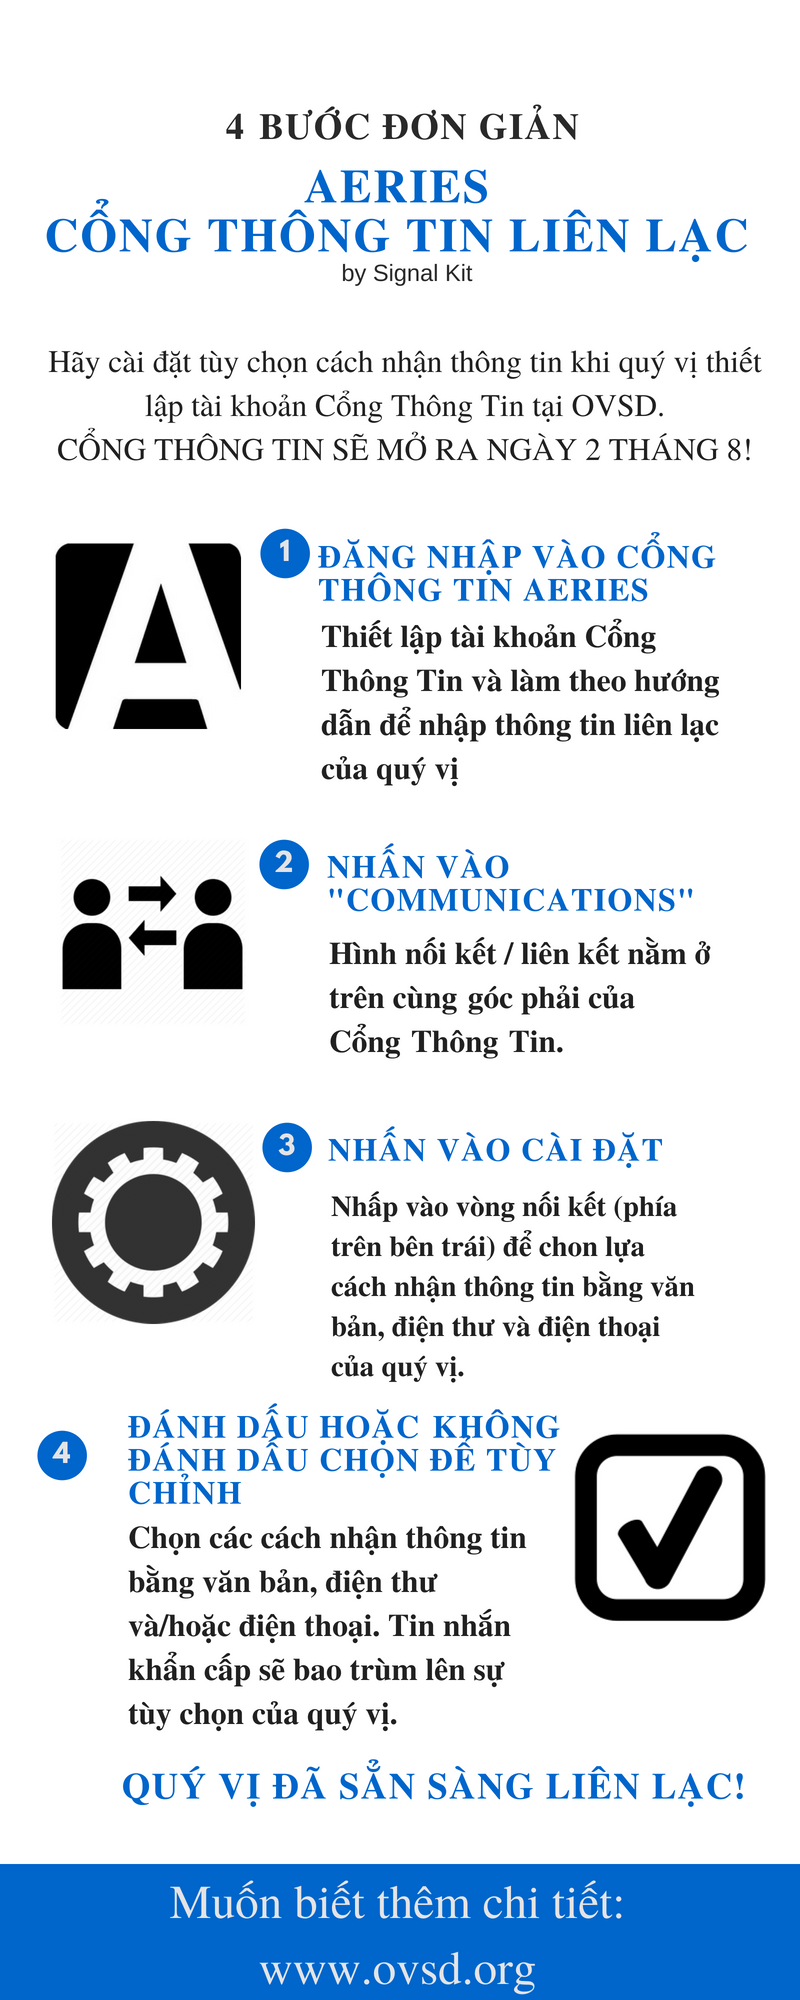 4 Simple Steps - Vietnamese